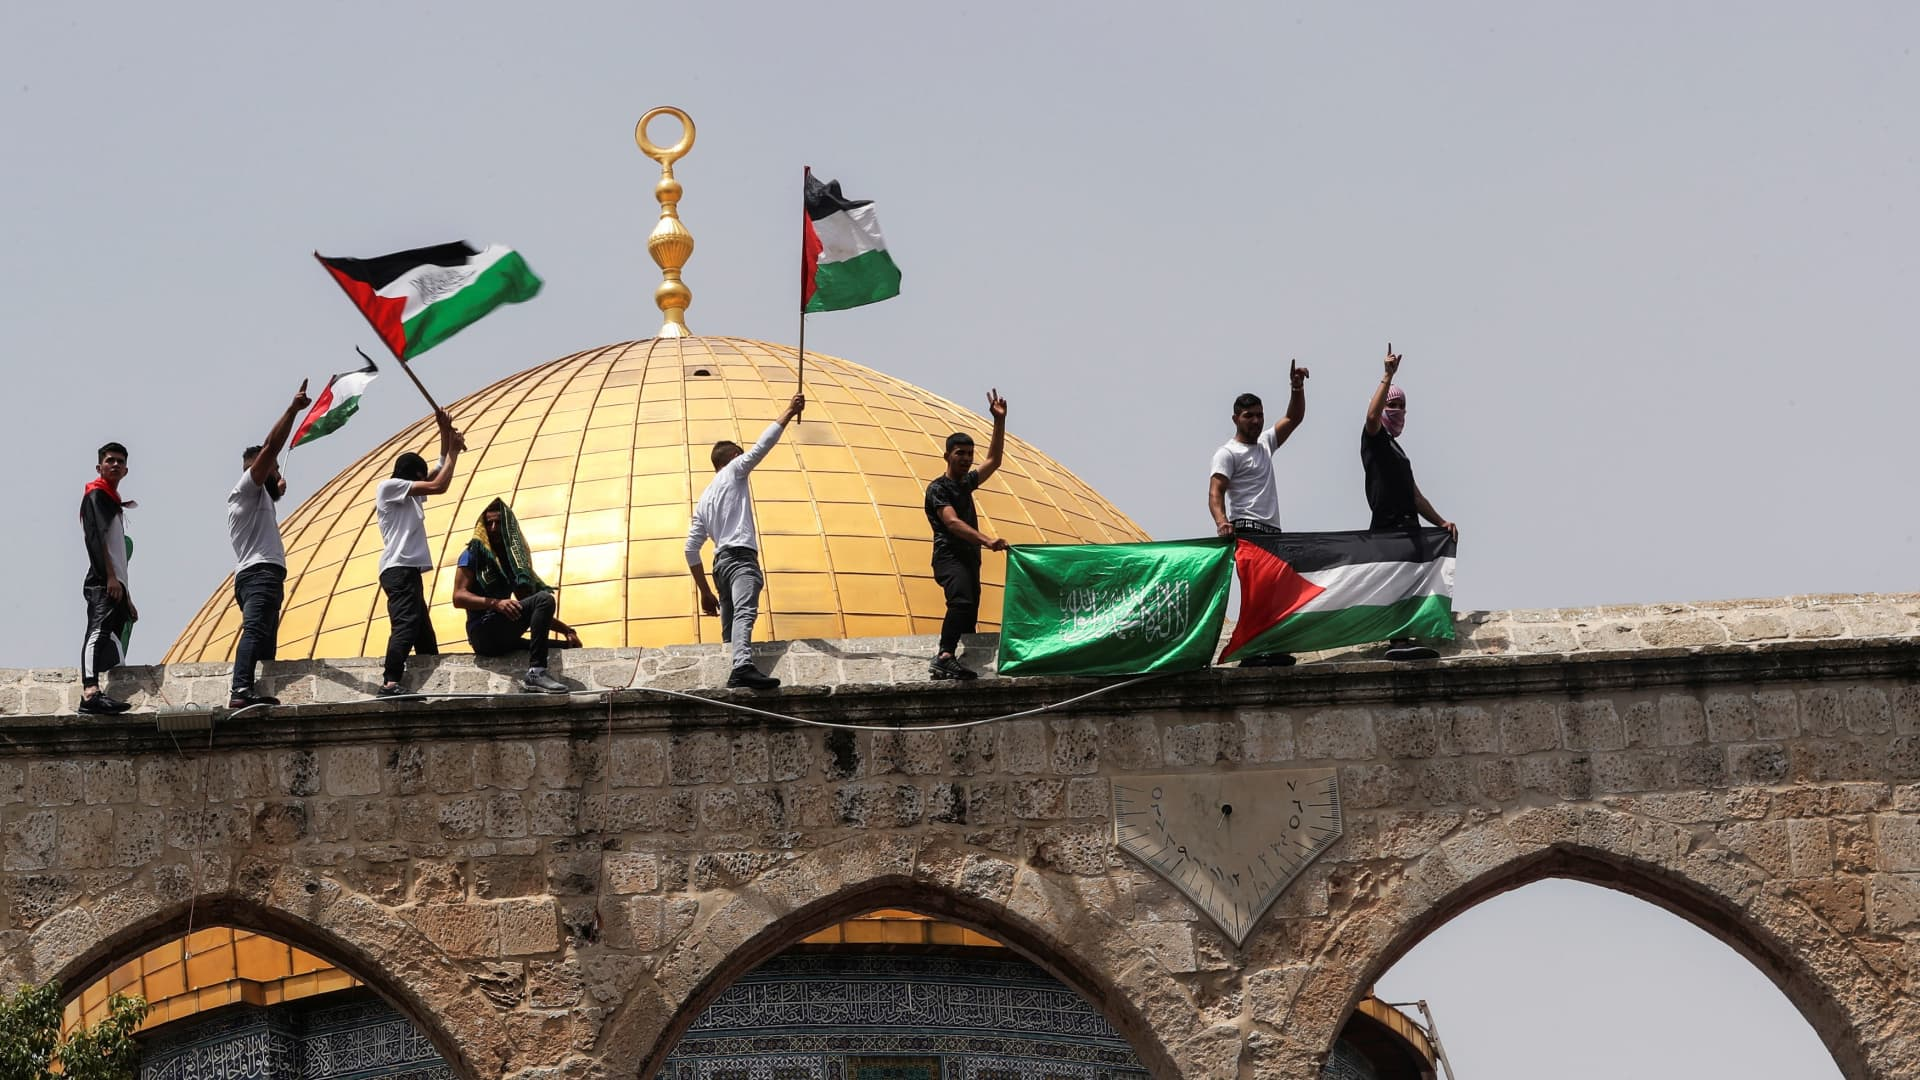 Palestinians hold flags as they stand at the compound that houses Al-Aqsa Mosque, known to Muslims as Noble Sanctuary and to Jews as Temple Mount, in Jerusalem's Old City May 21, 2021.